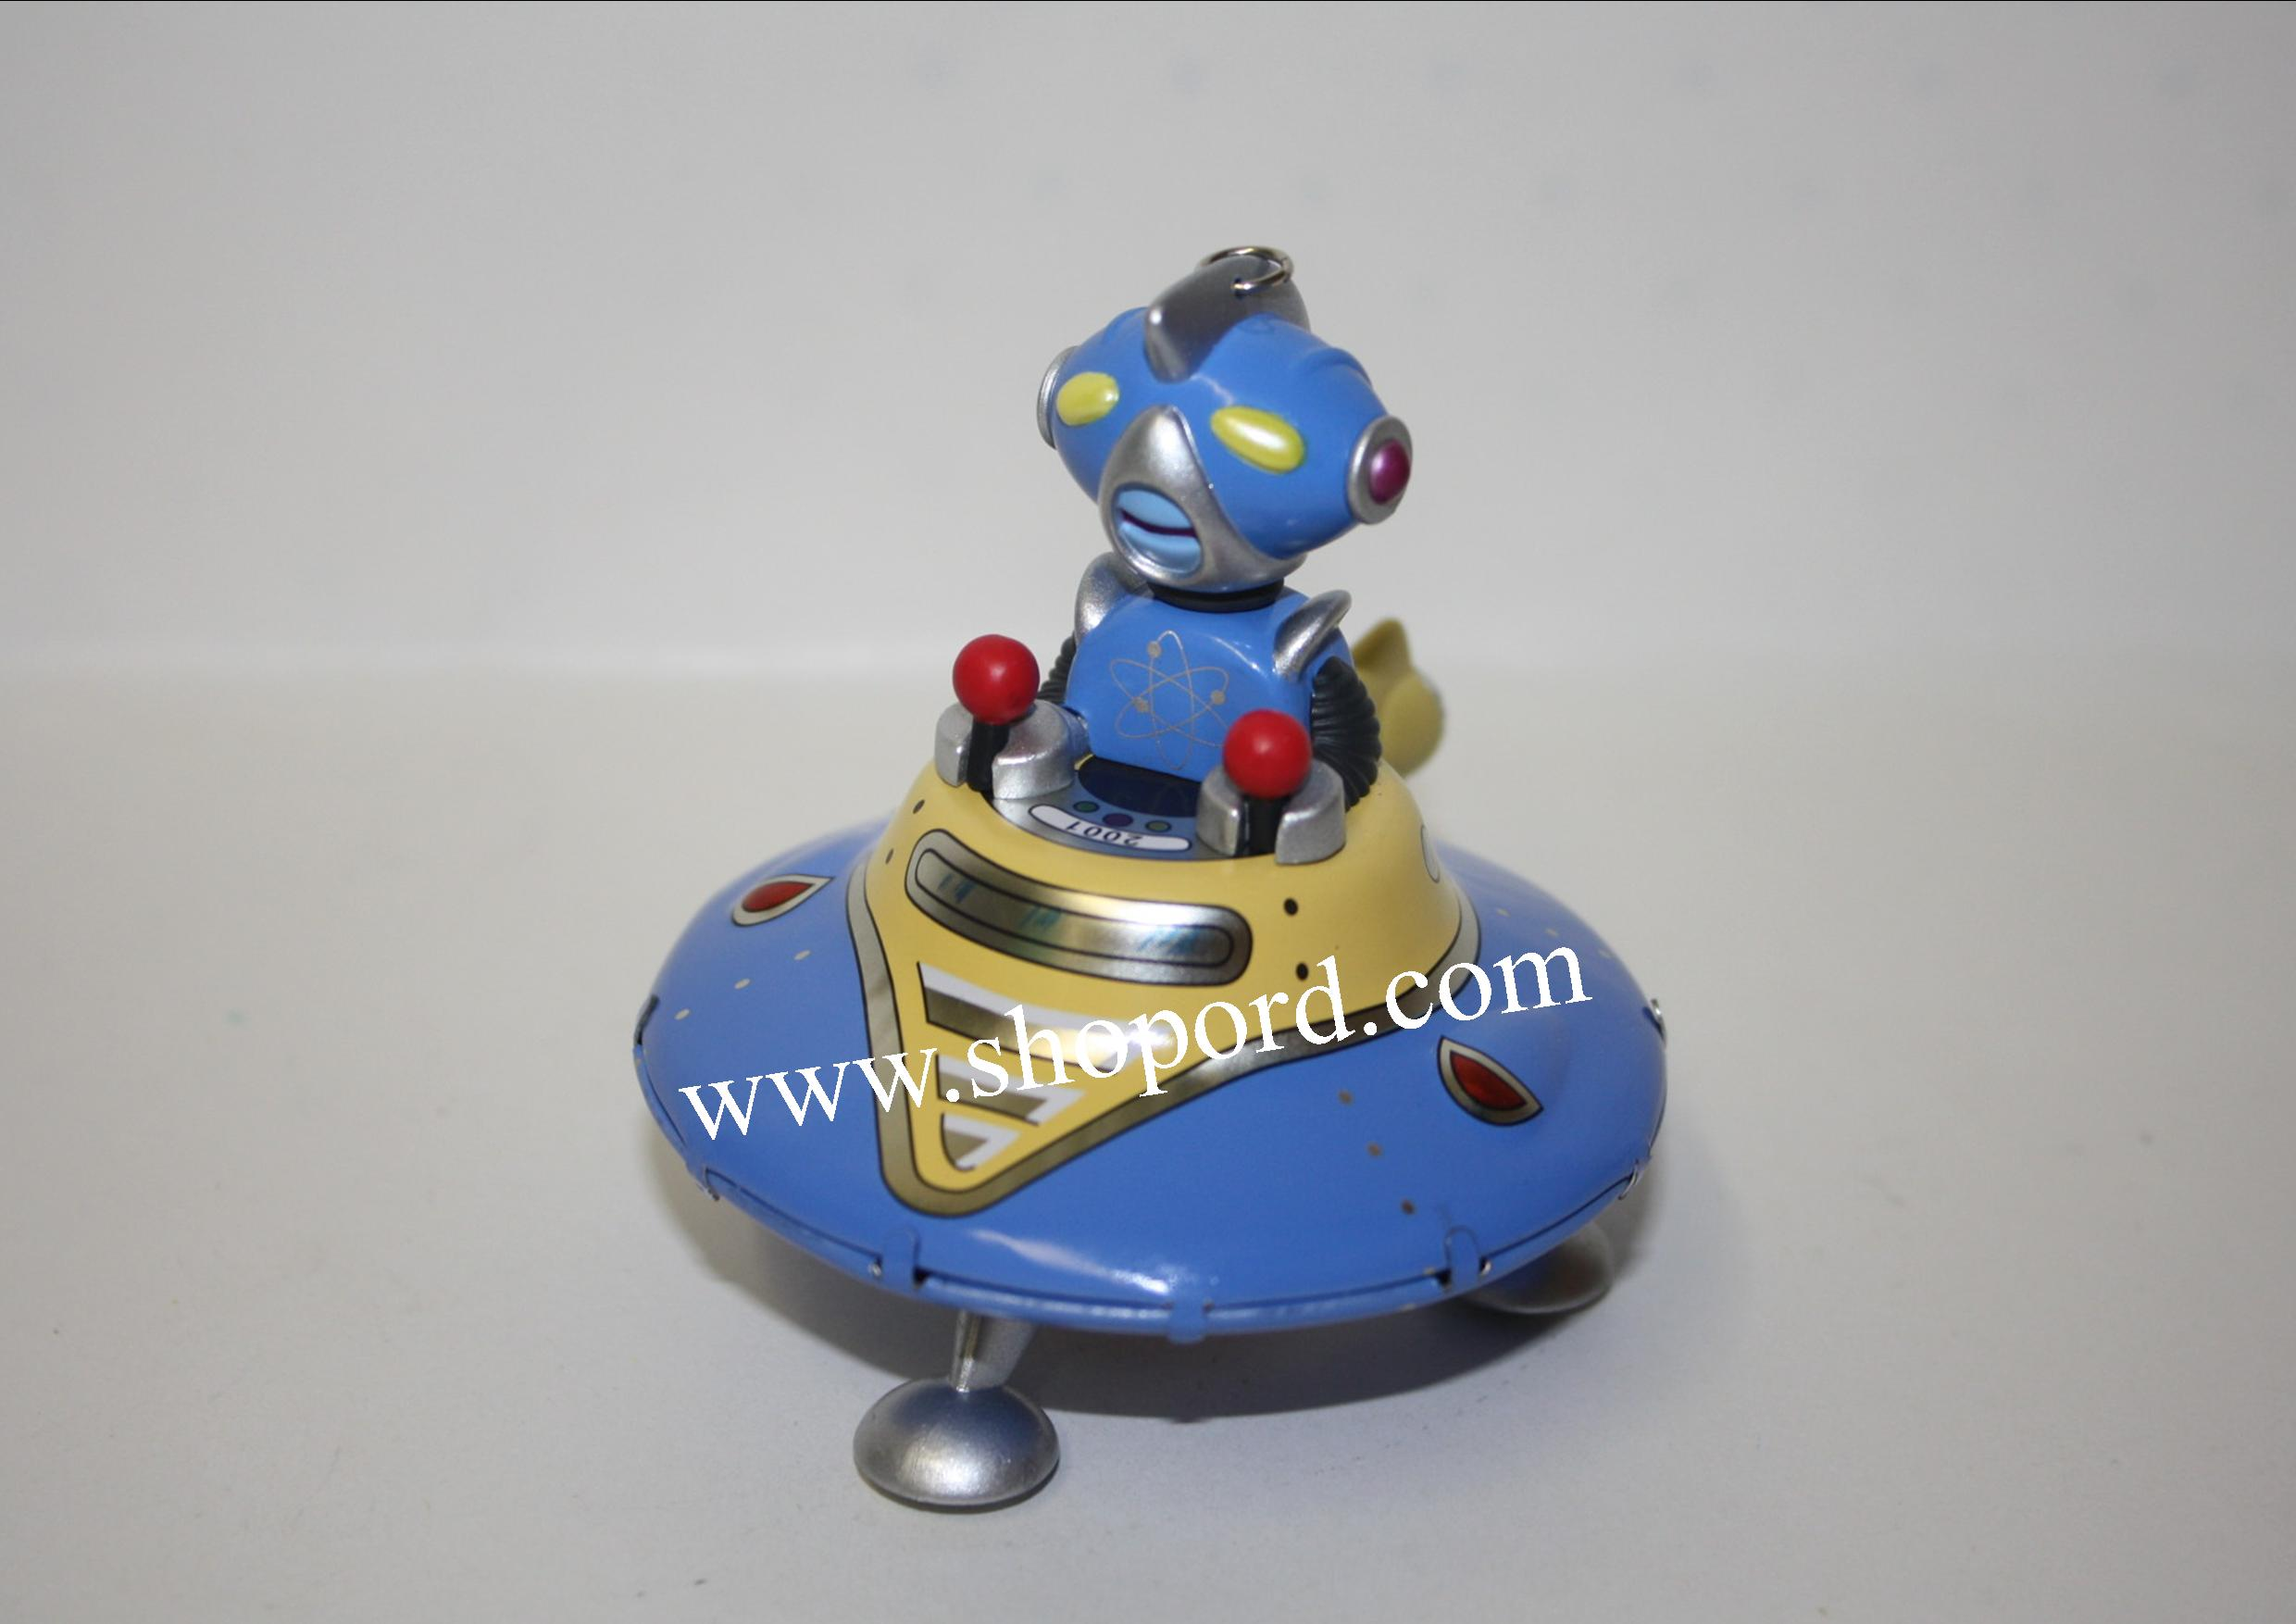 Hallmark 2001 Robot Parade Ornament 2nd In The Series QX8162 Damaged Box